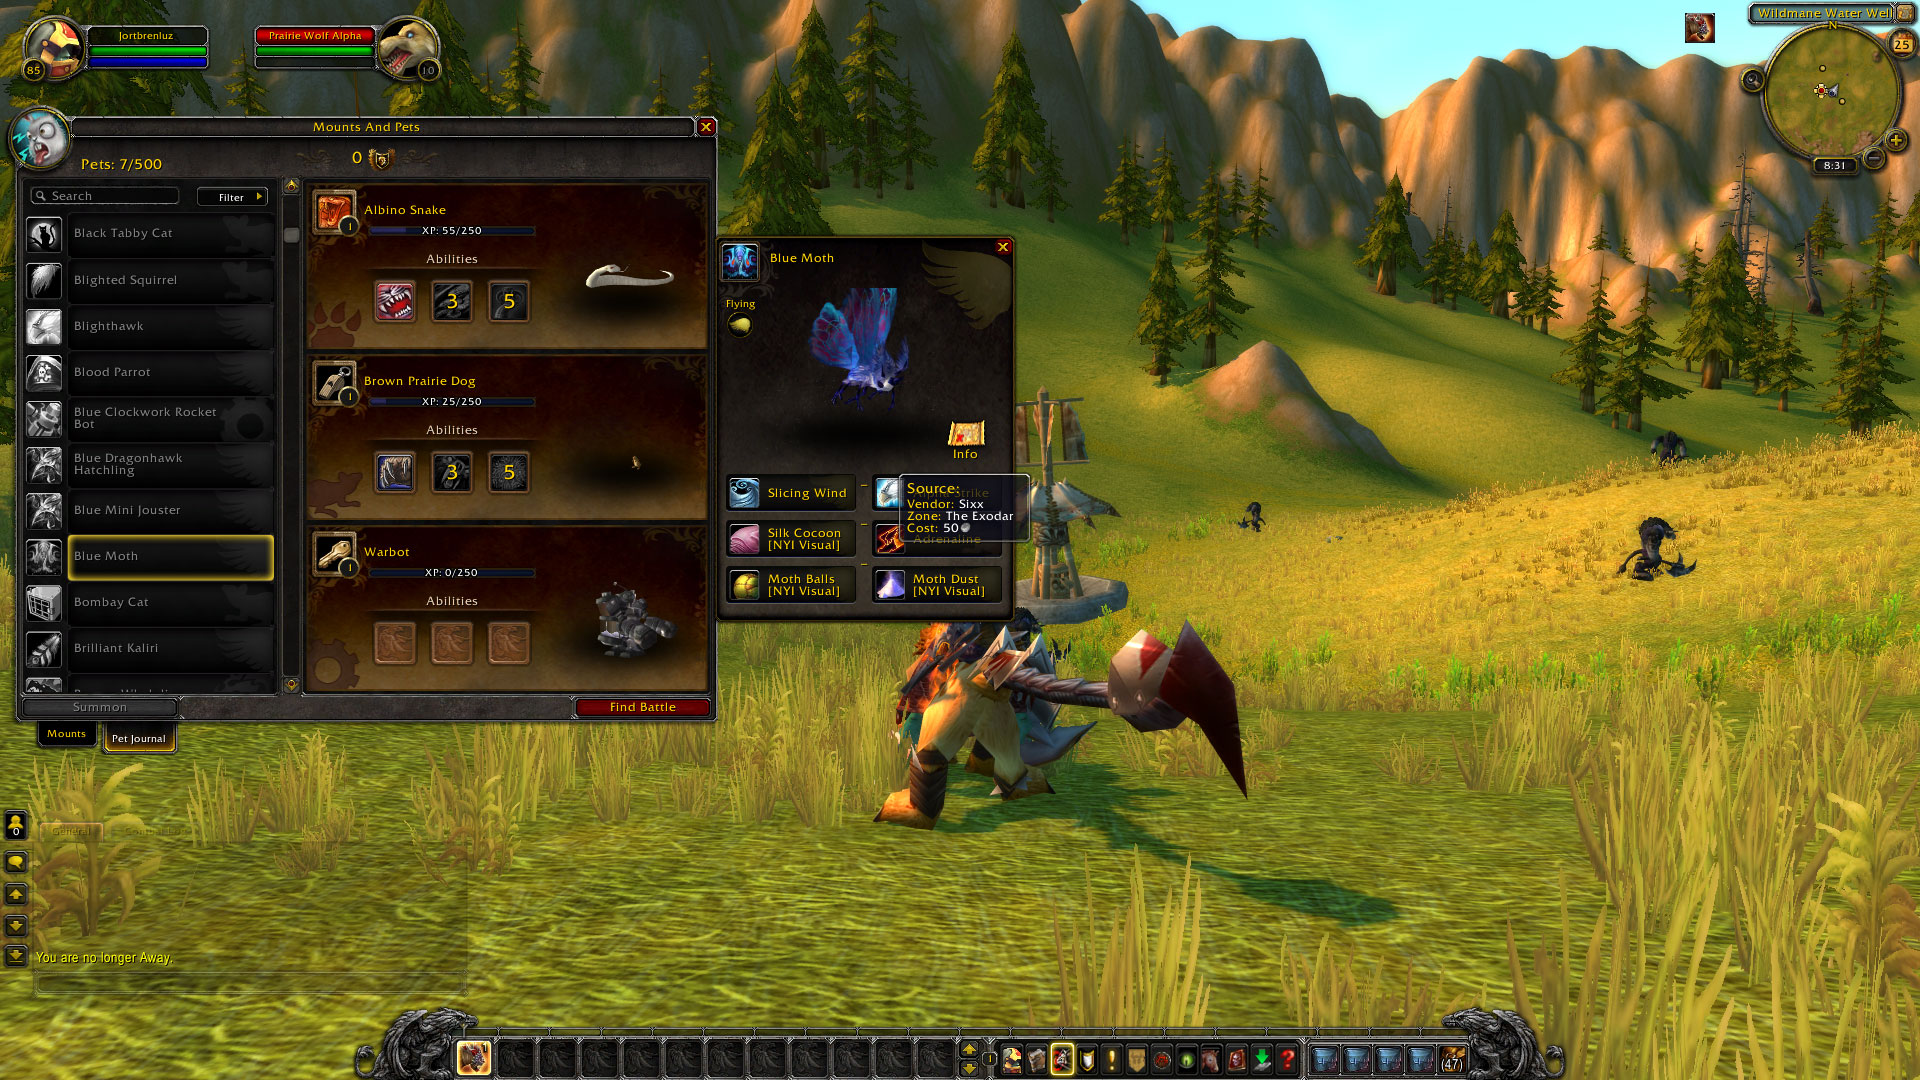 Image of: Horse Full Encyclopedia Directly In The Game Maps Arent Implemented Yet But Currently The Info Page Of Any Pet Will Already Tell You Where You Can Find It Mmochampion Pet Battle System Now On Beta Realms early Version Mmochampion